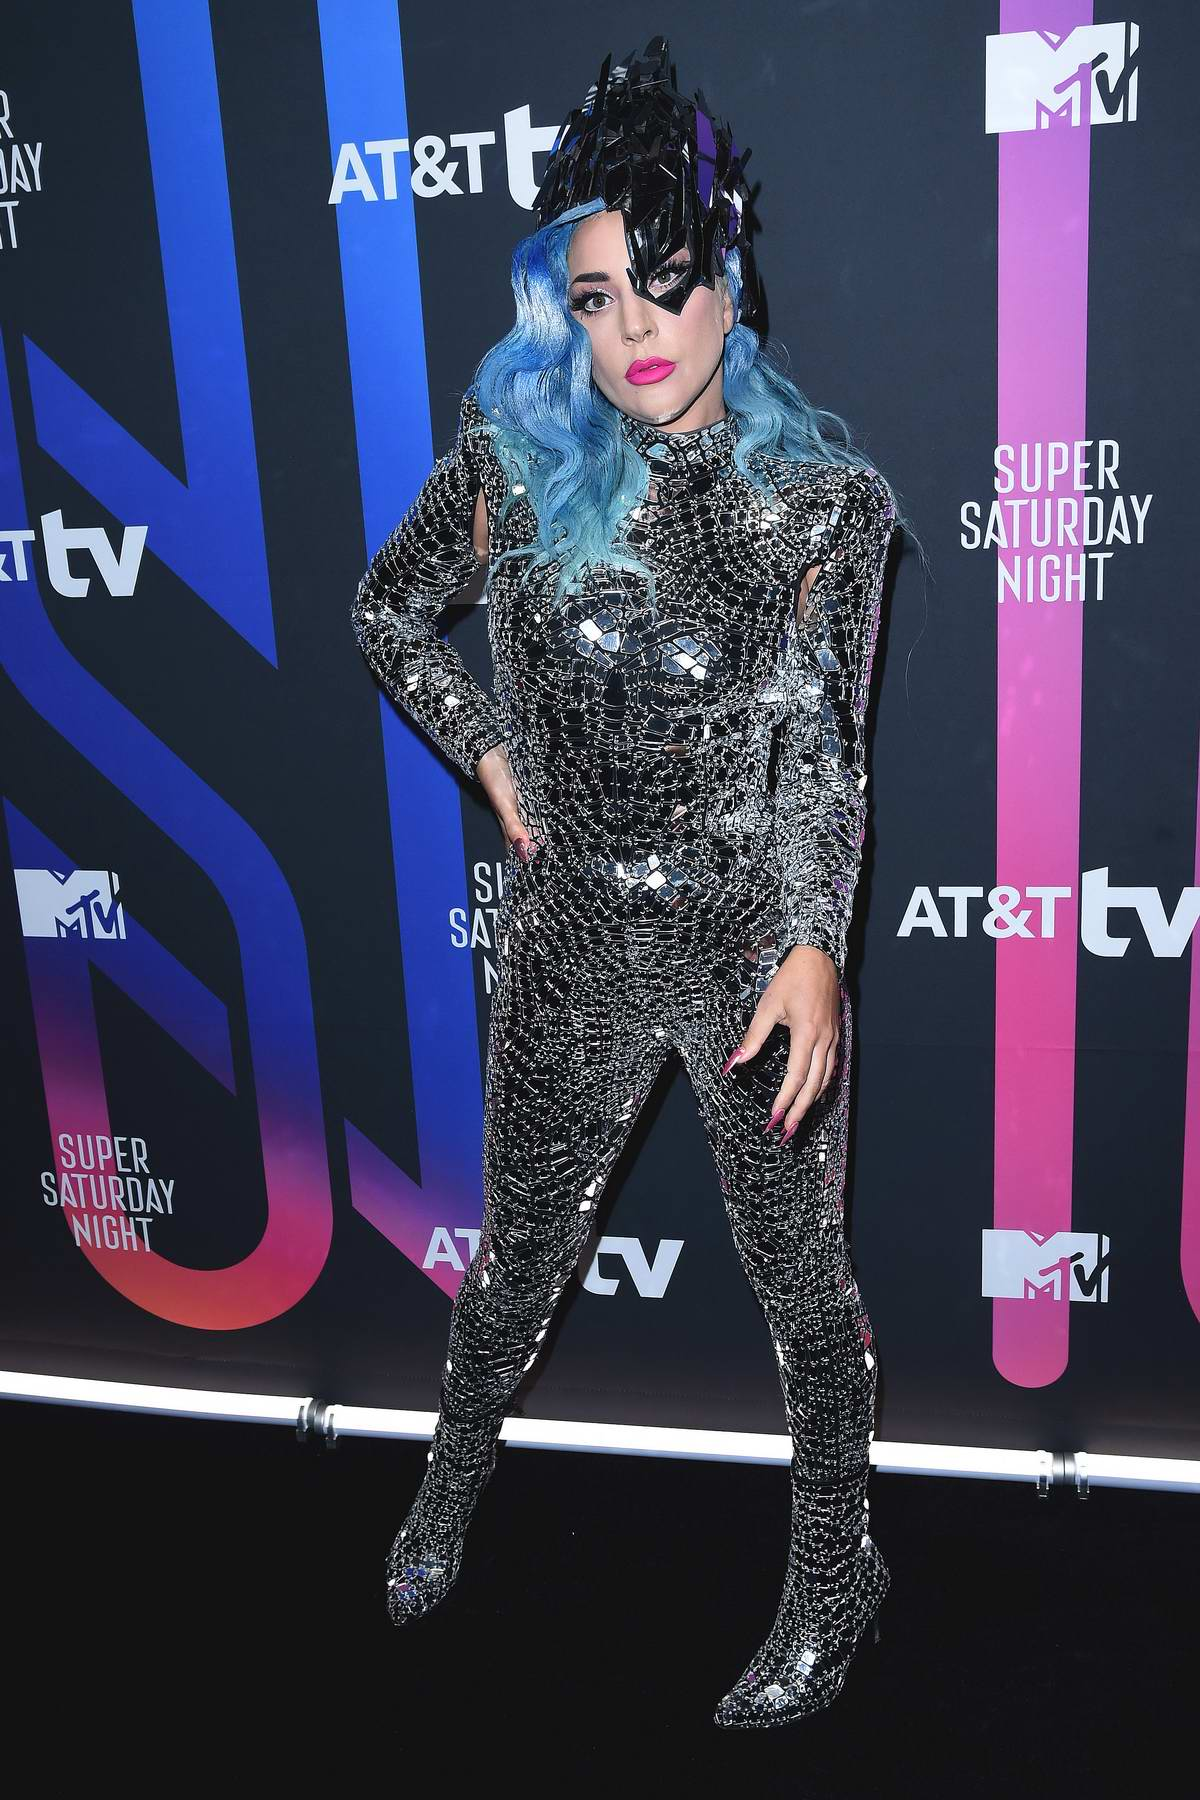 Lady Gaga attends the AT&T TV Super Saturday Night in Miami, Florida